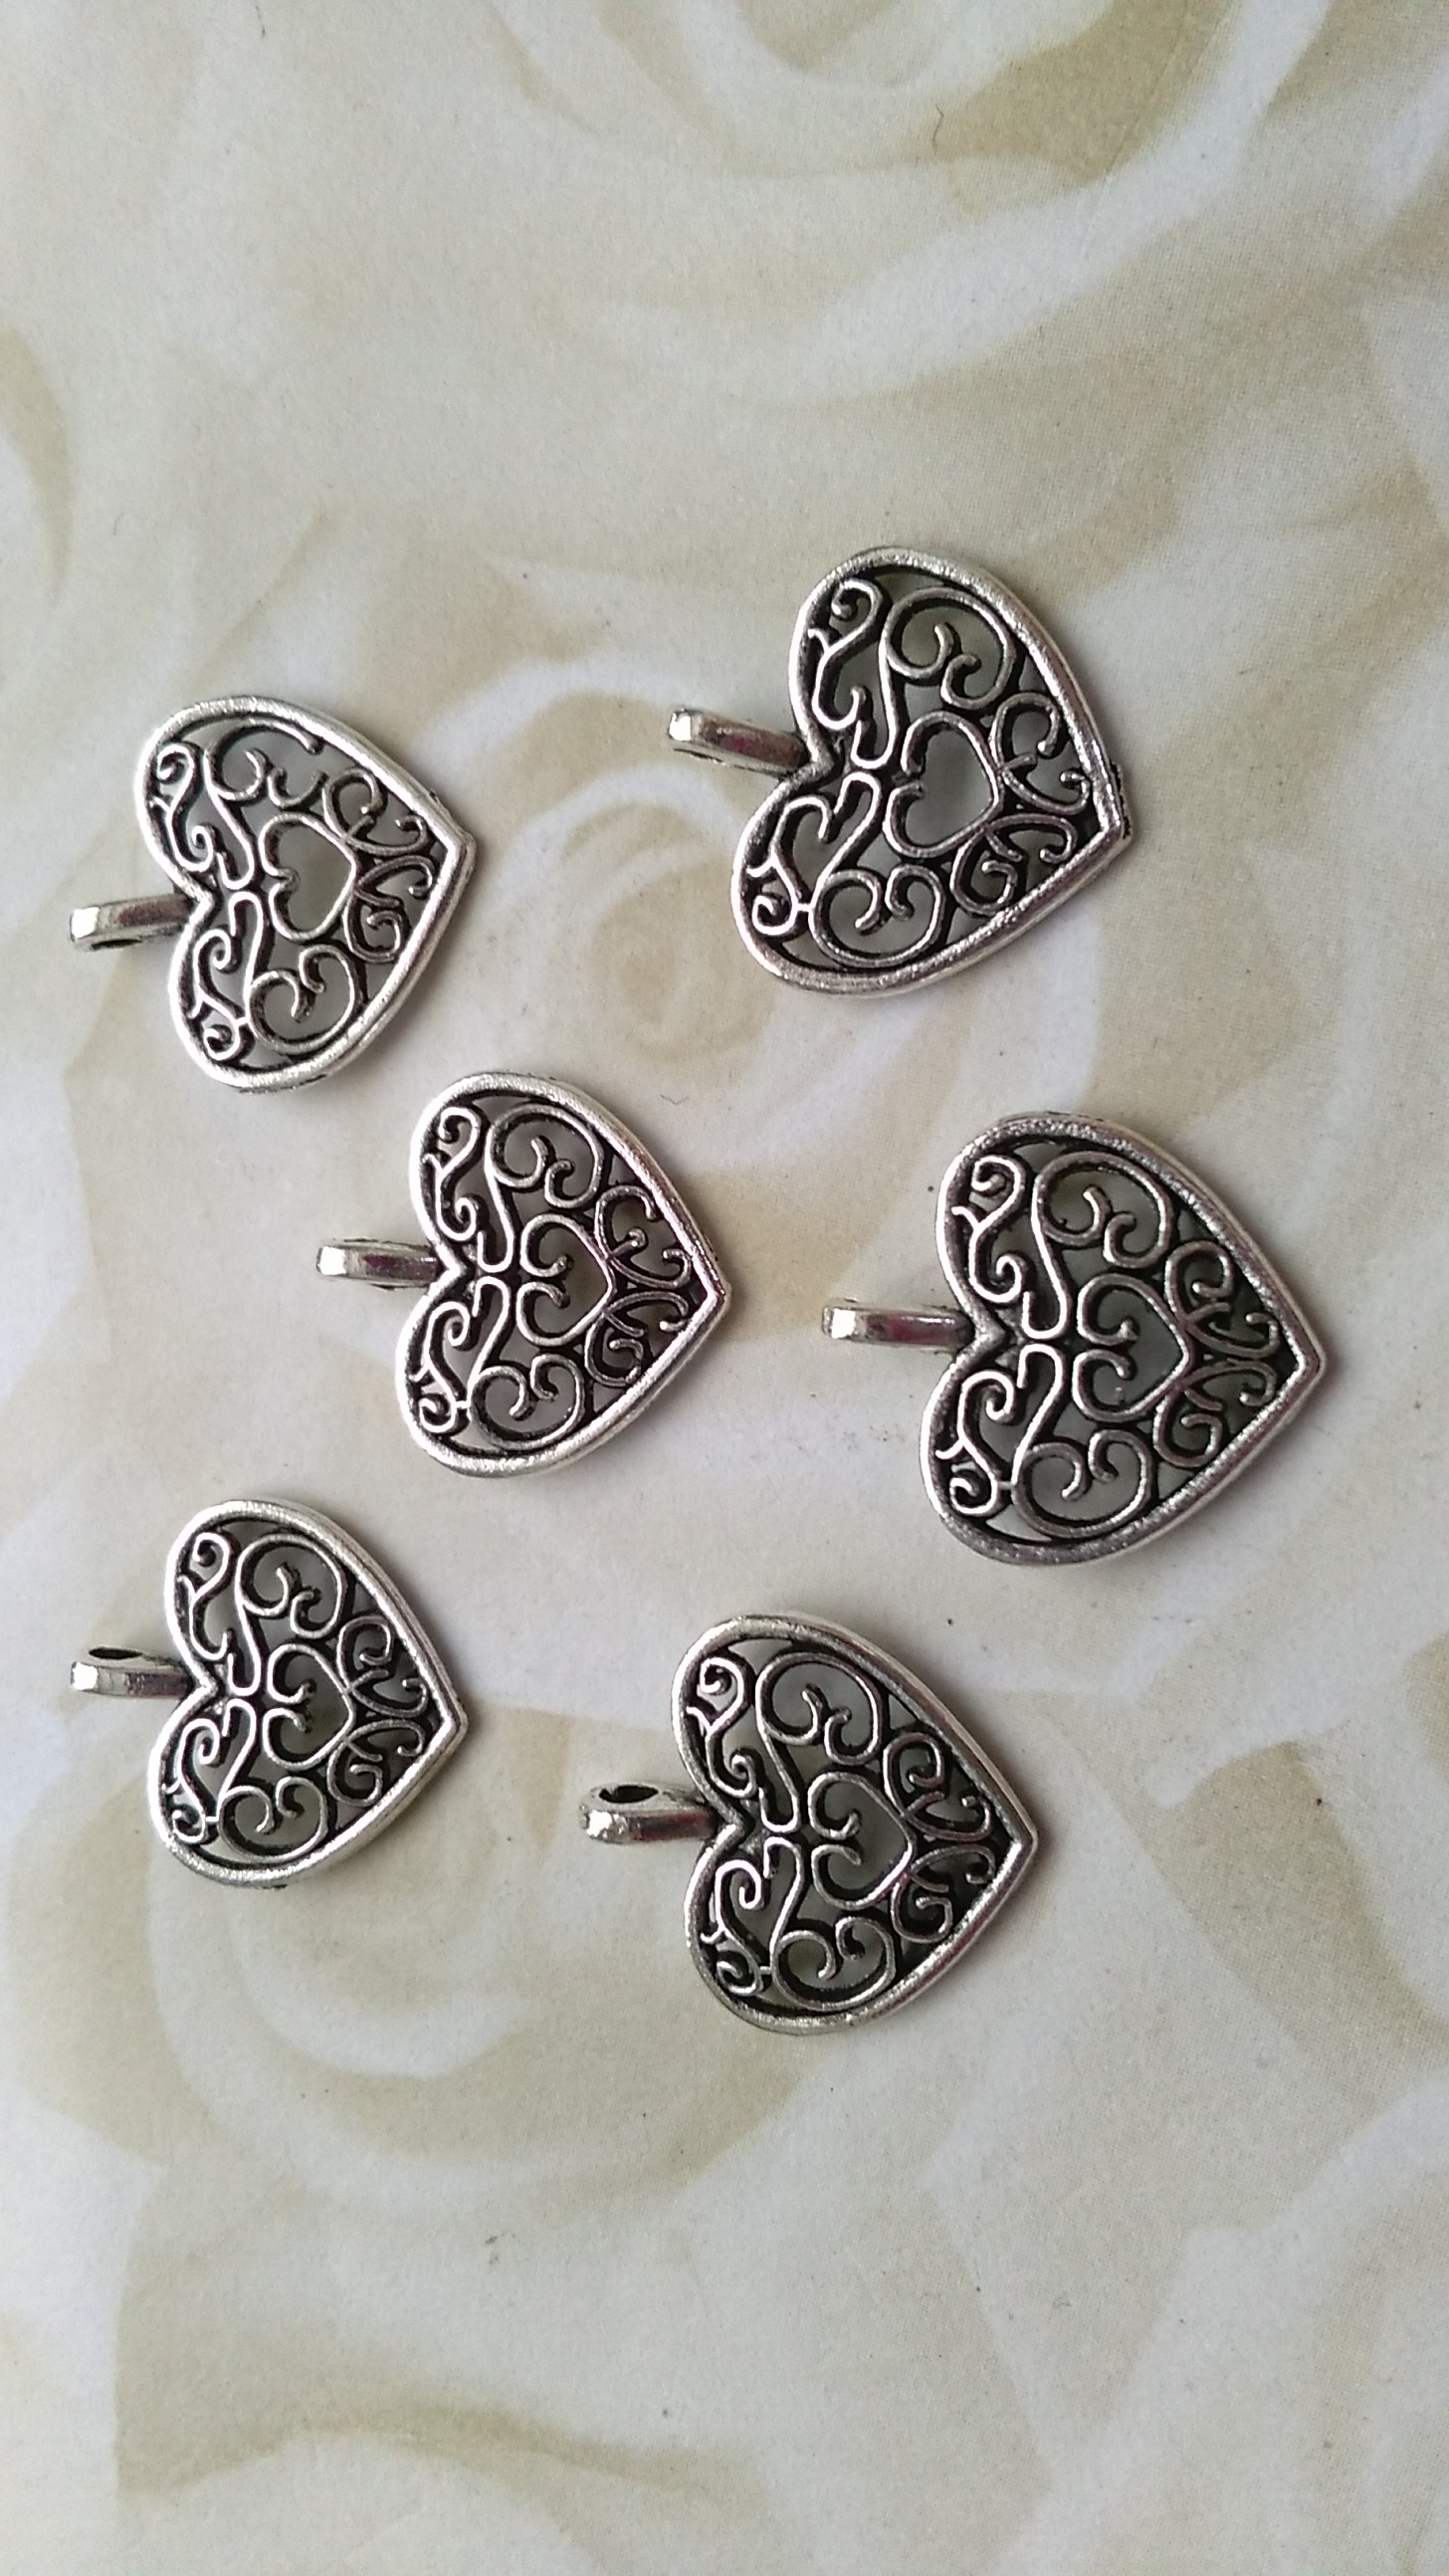 Tibetan Silver Ornate 15mm Charm